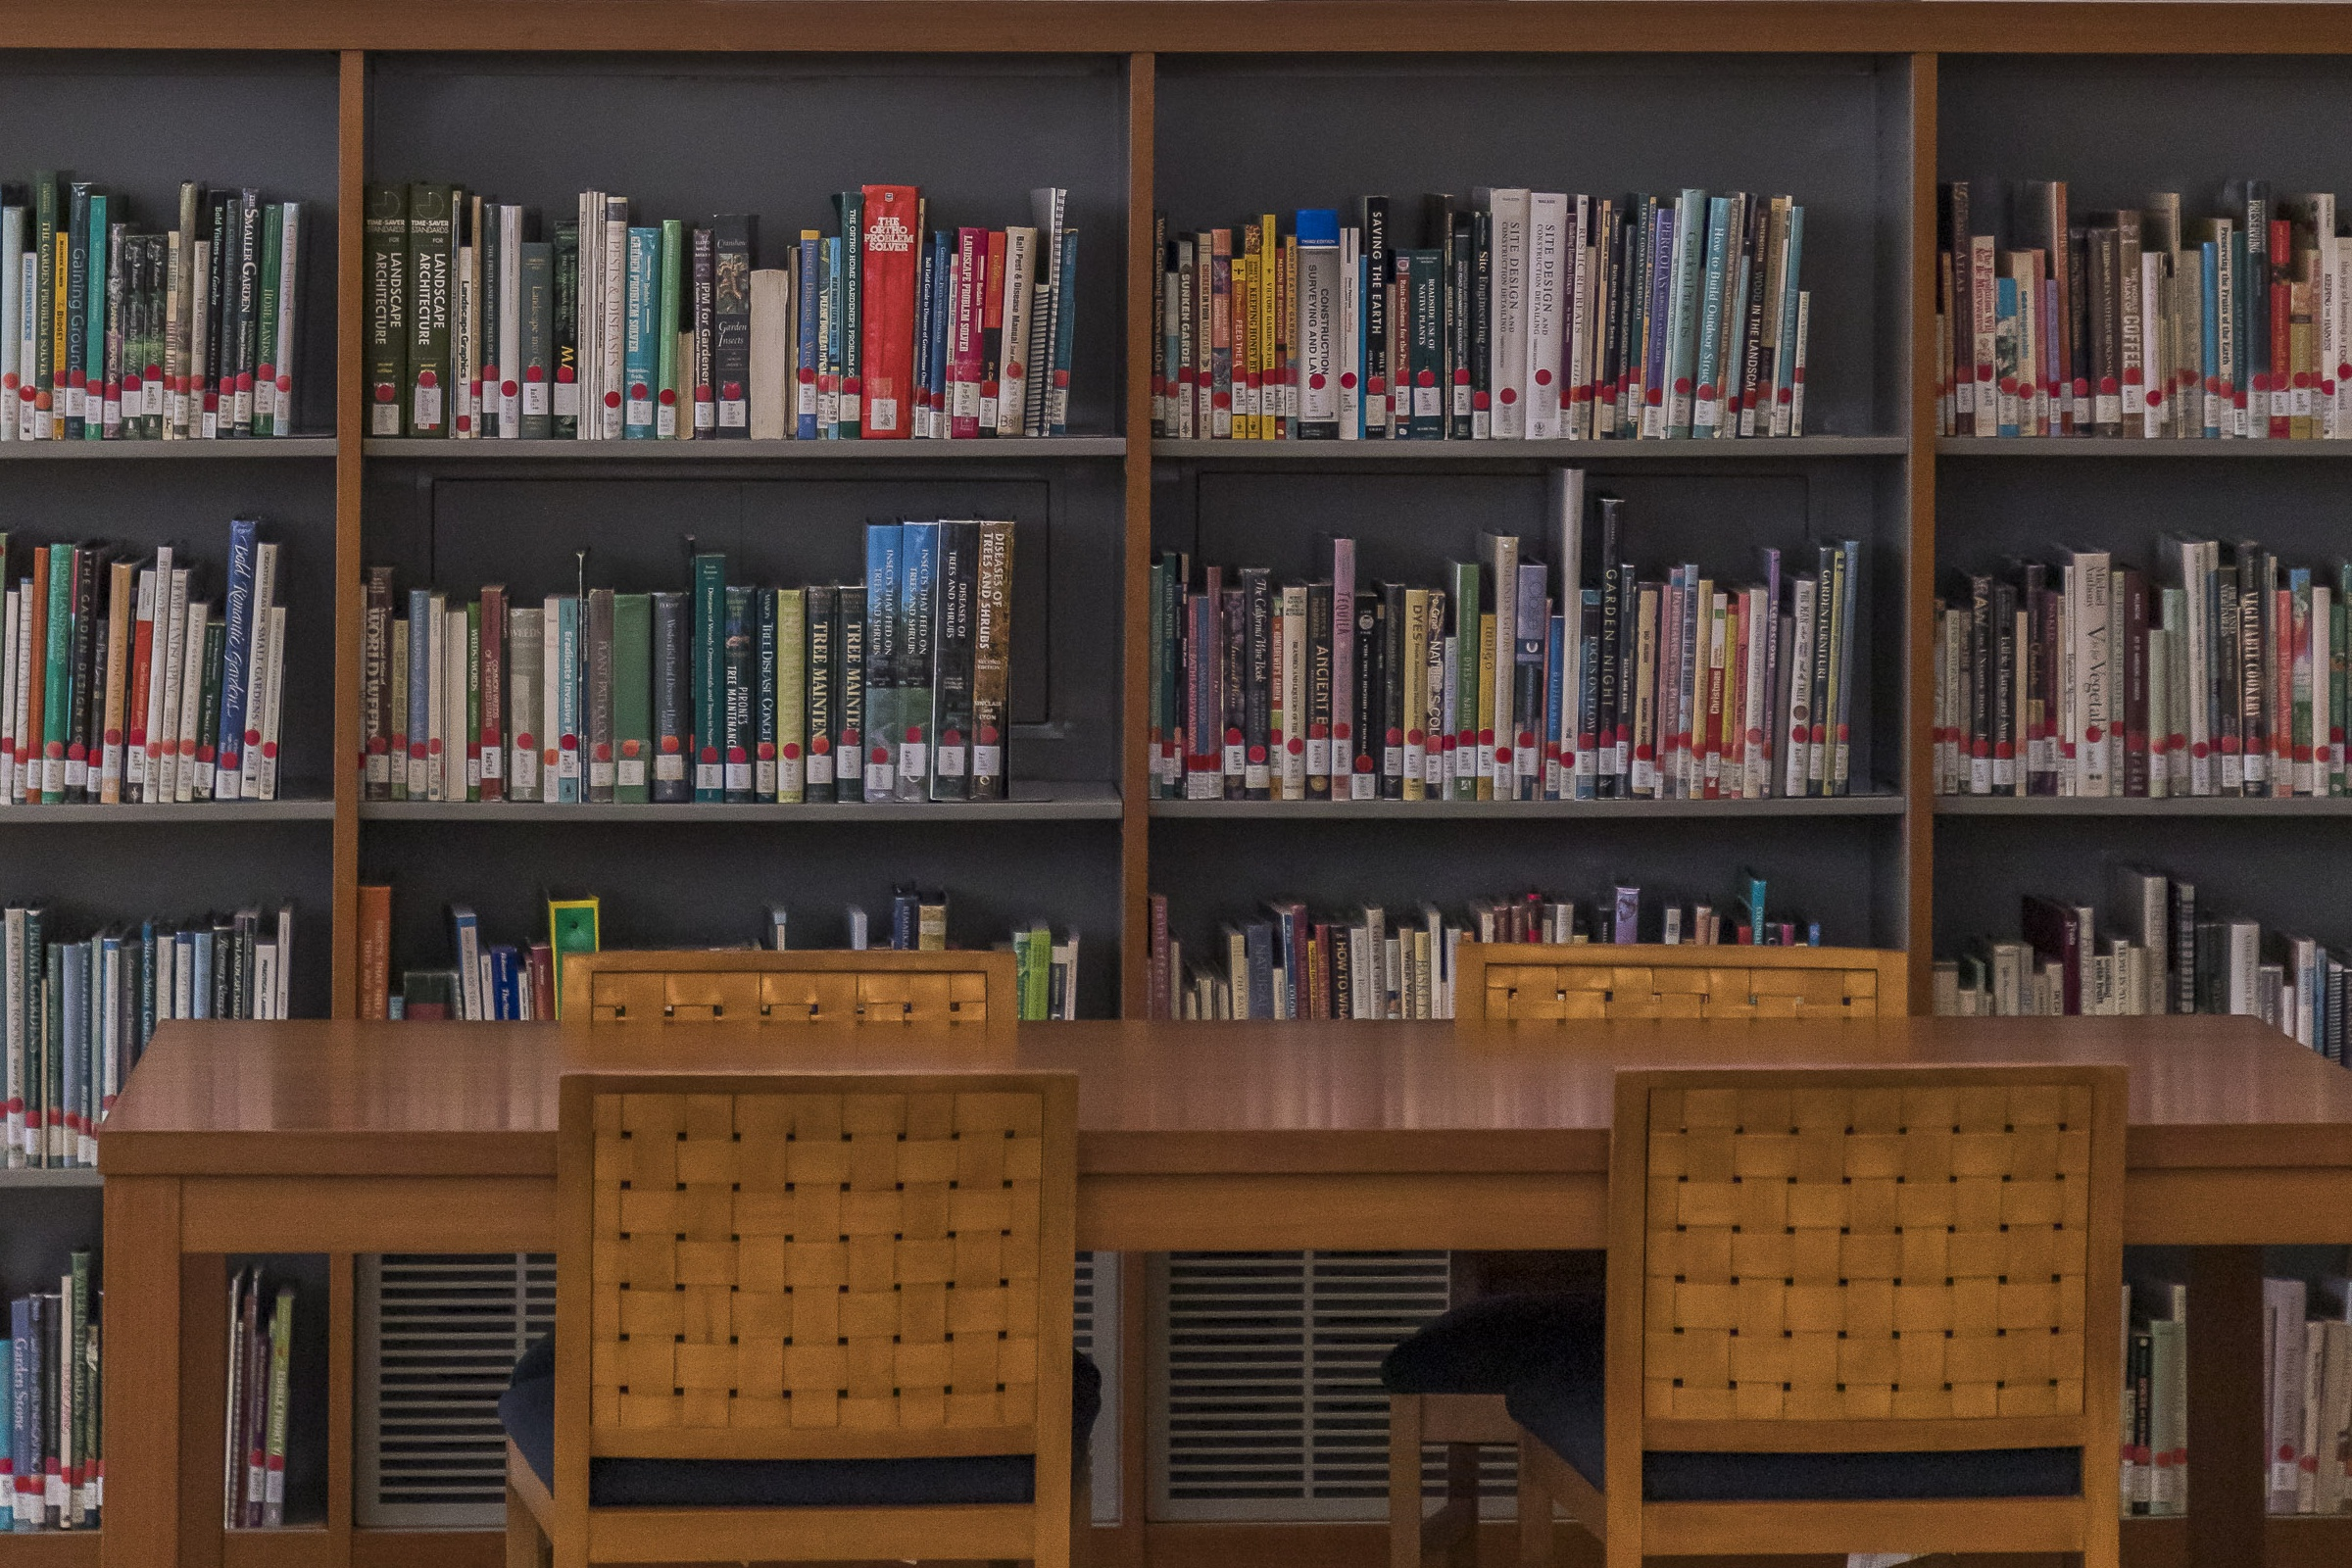 A table in front of bookshelves in the Library